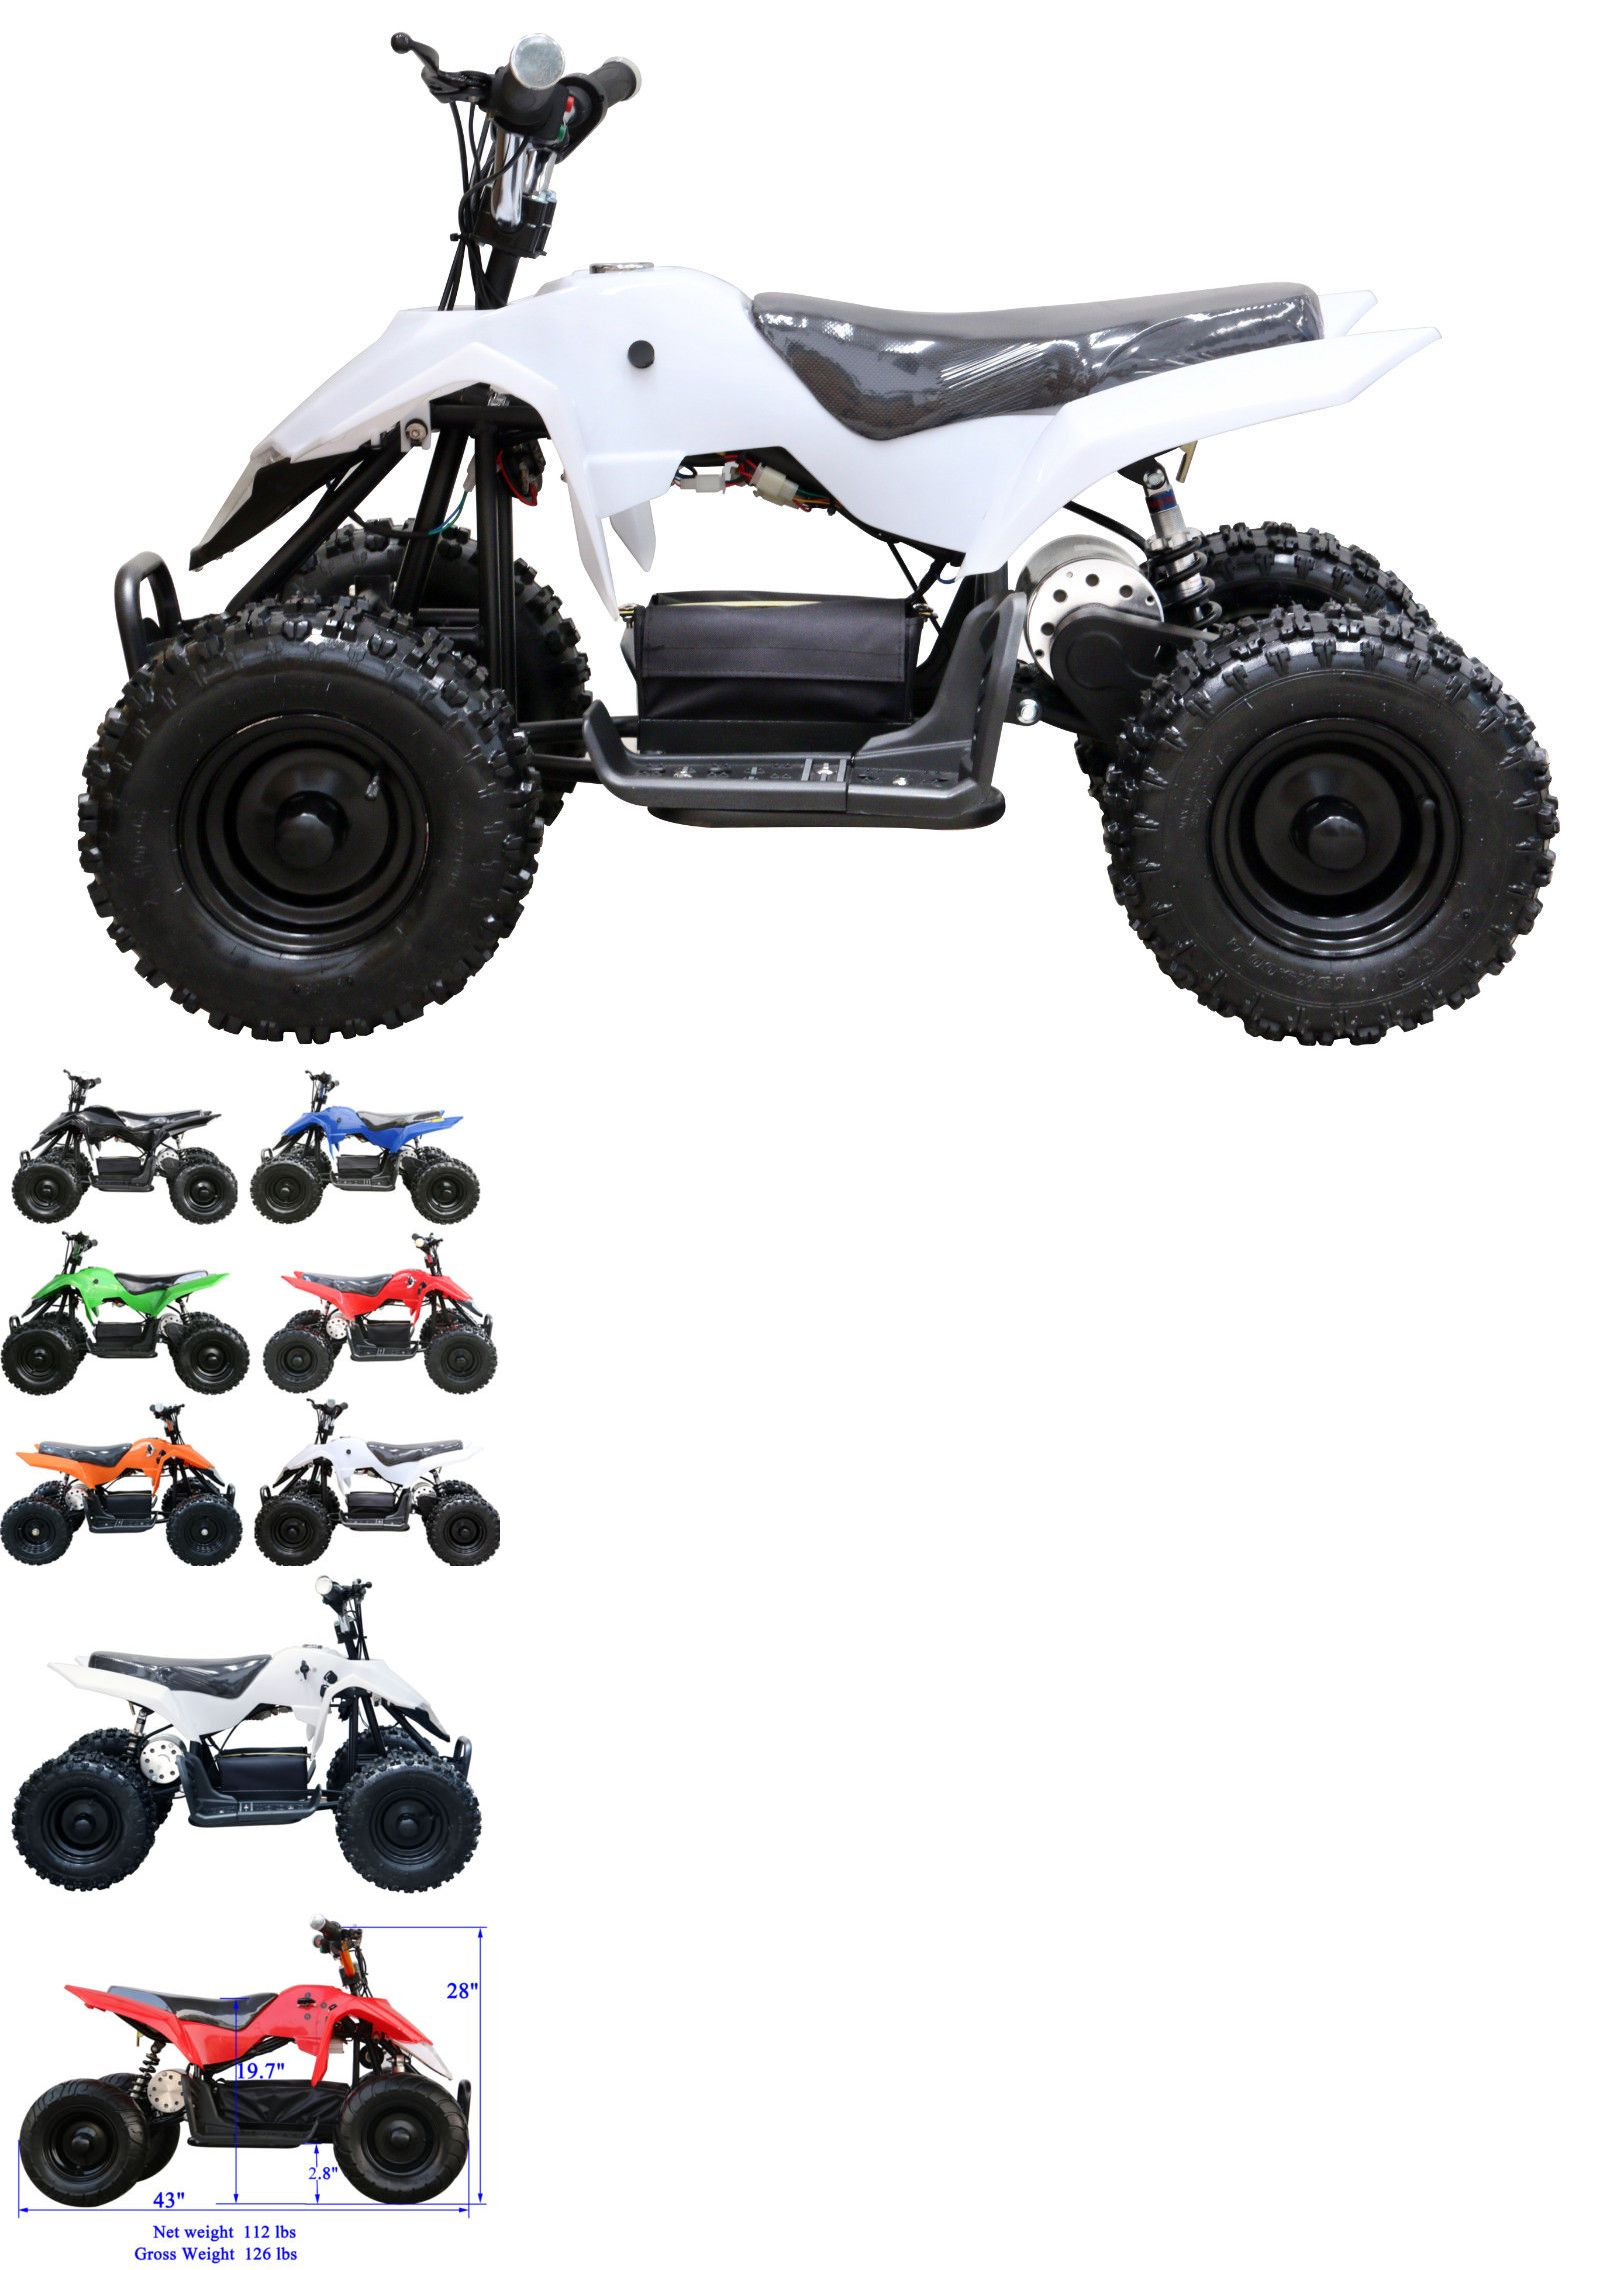 Complete Go Karts And Frames 64656 24v 500w Kid Electric Atv Mini Quad Bike White New It Now Only 626 On Ebay